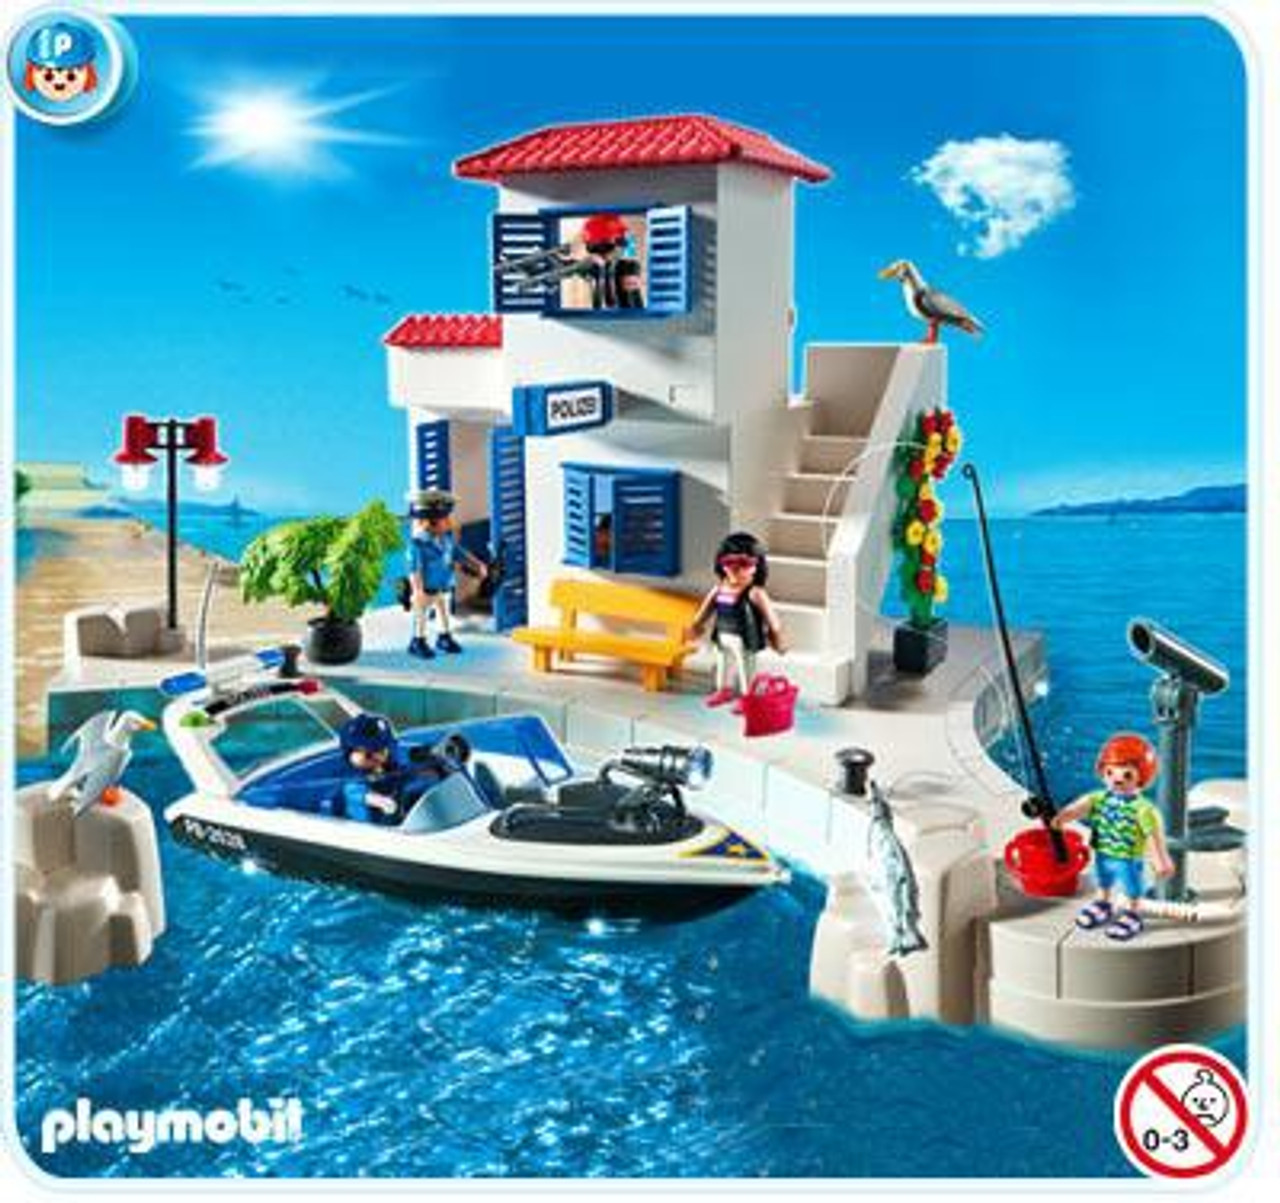 Playmobil Harbor Police Station with Speedboat Set #5128